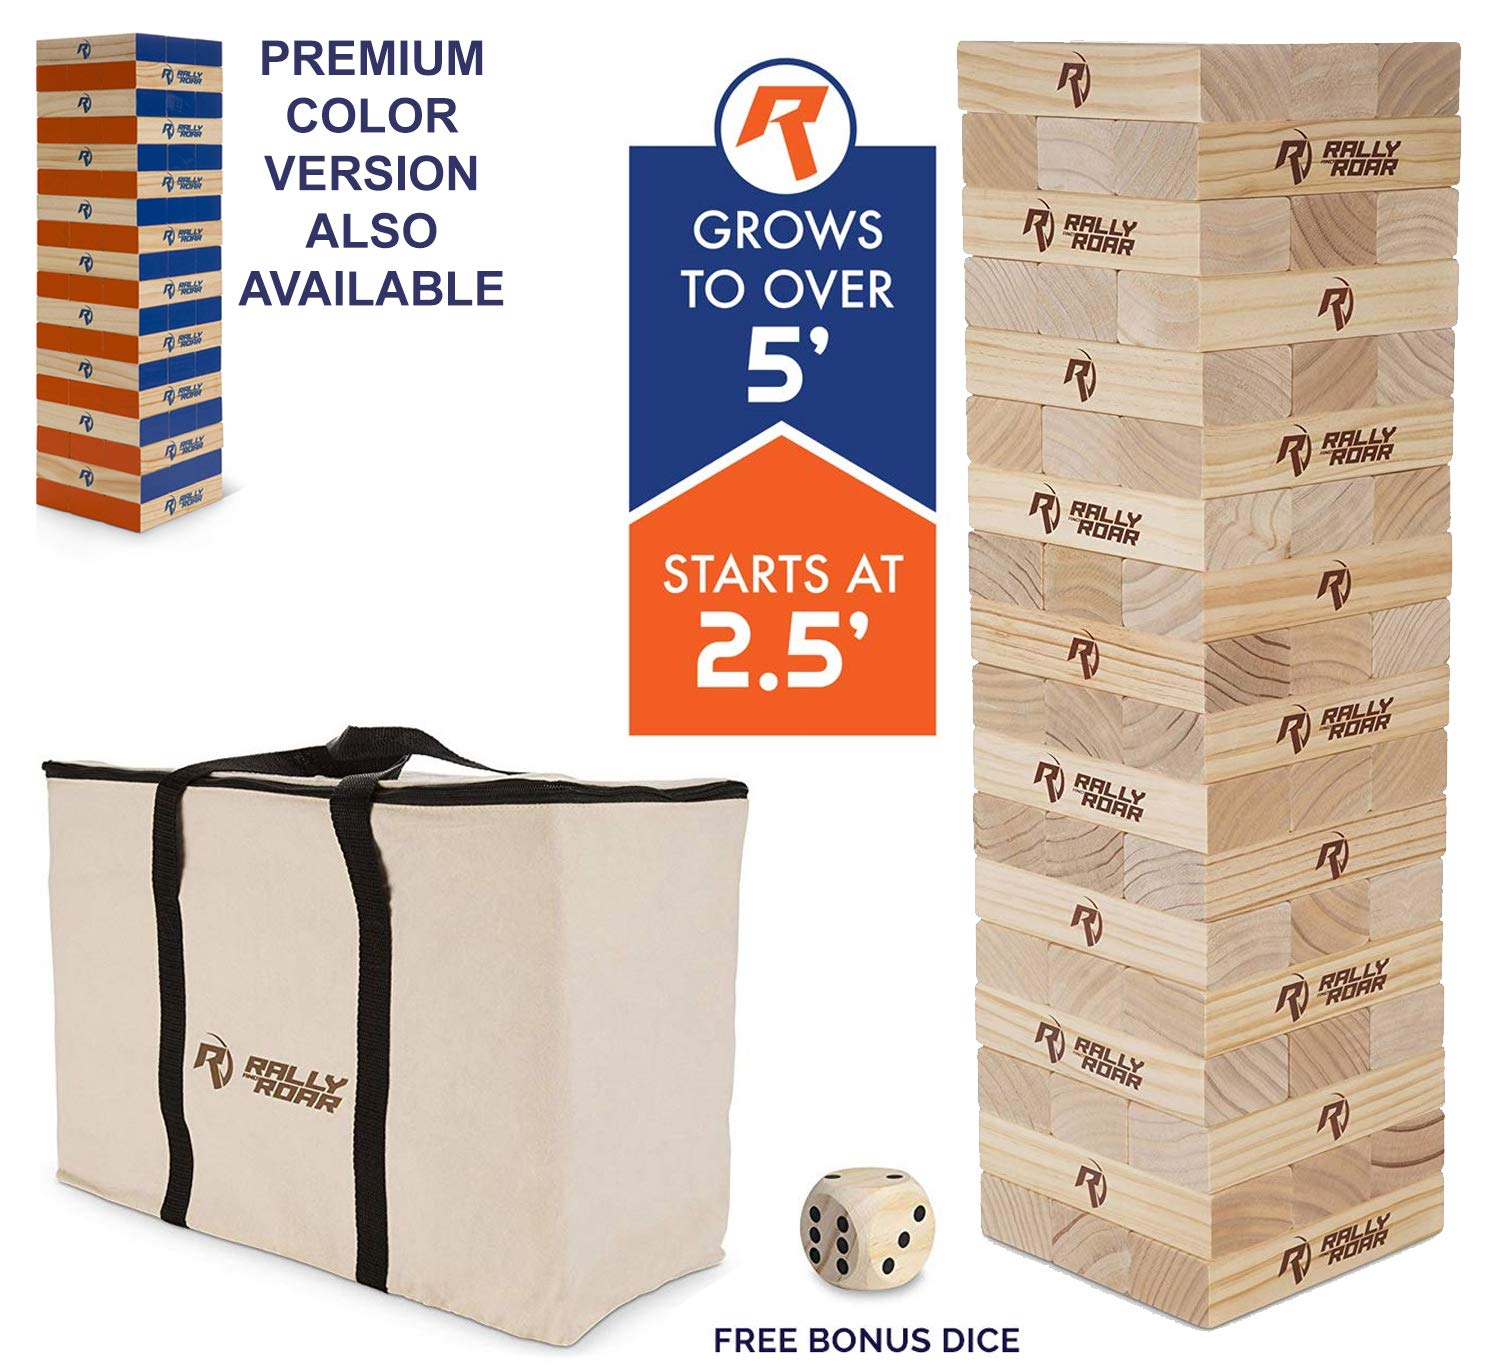 Rally and Roar Toppling Tower Giant Tumbling Timbers Game 2.5 feet Tall (Build to Over 5 feet)- Classic Wood Version - for Adults, Family - Stacking Blocks Set w/Canvas Bag by Rally and Roar